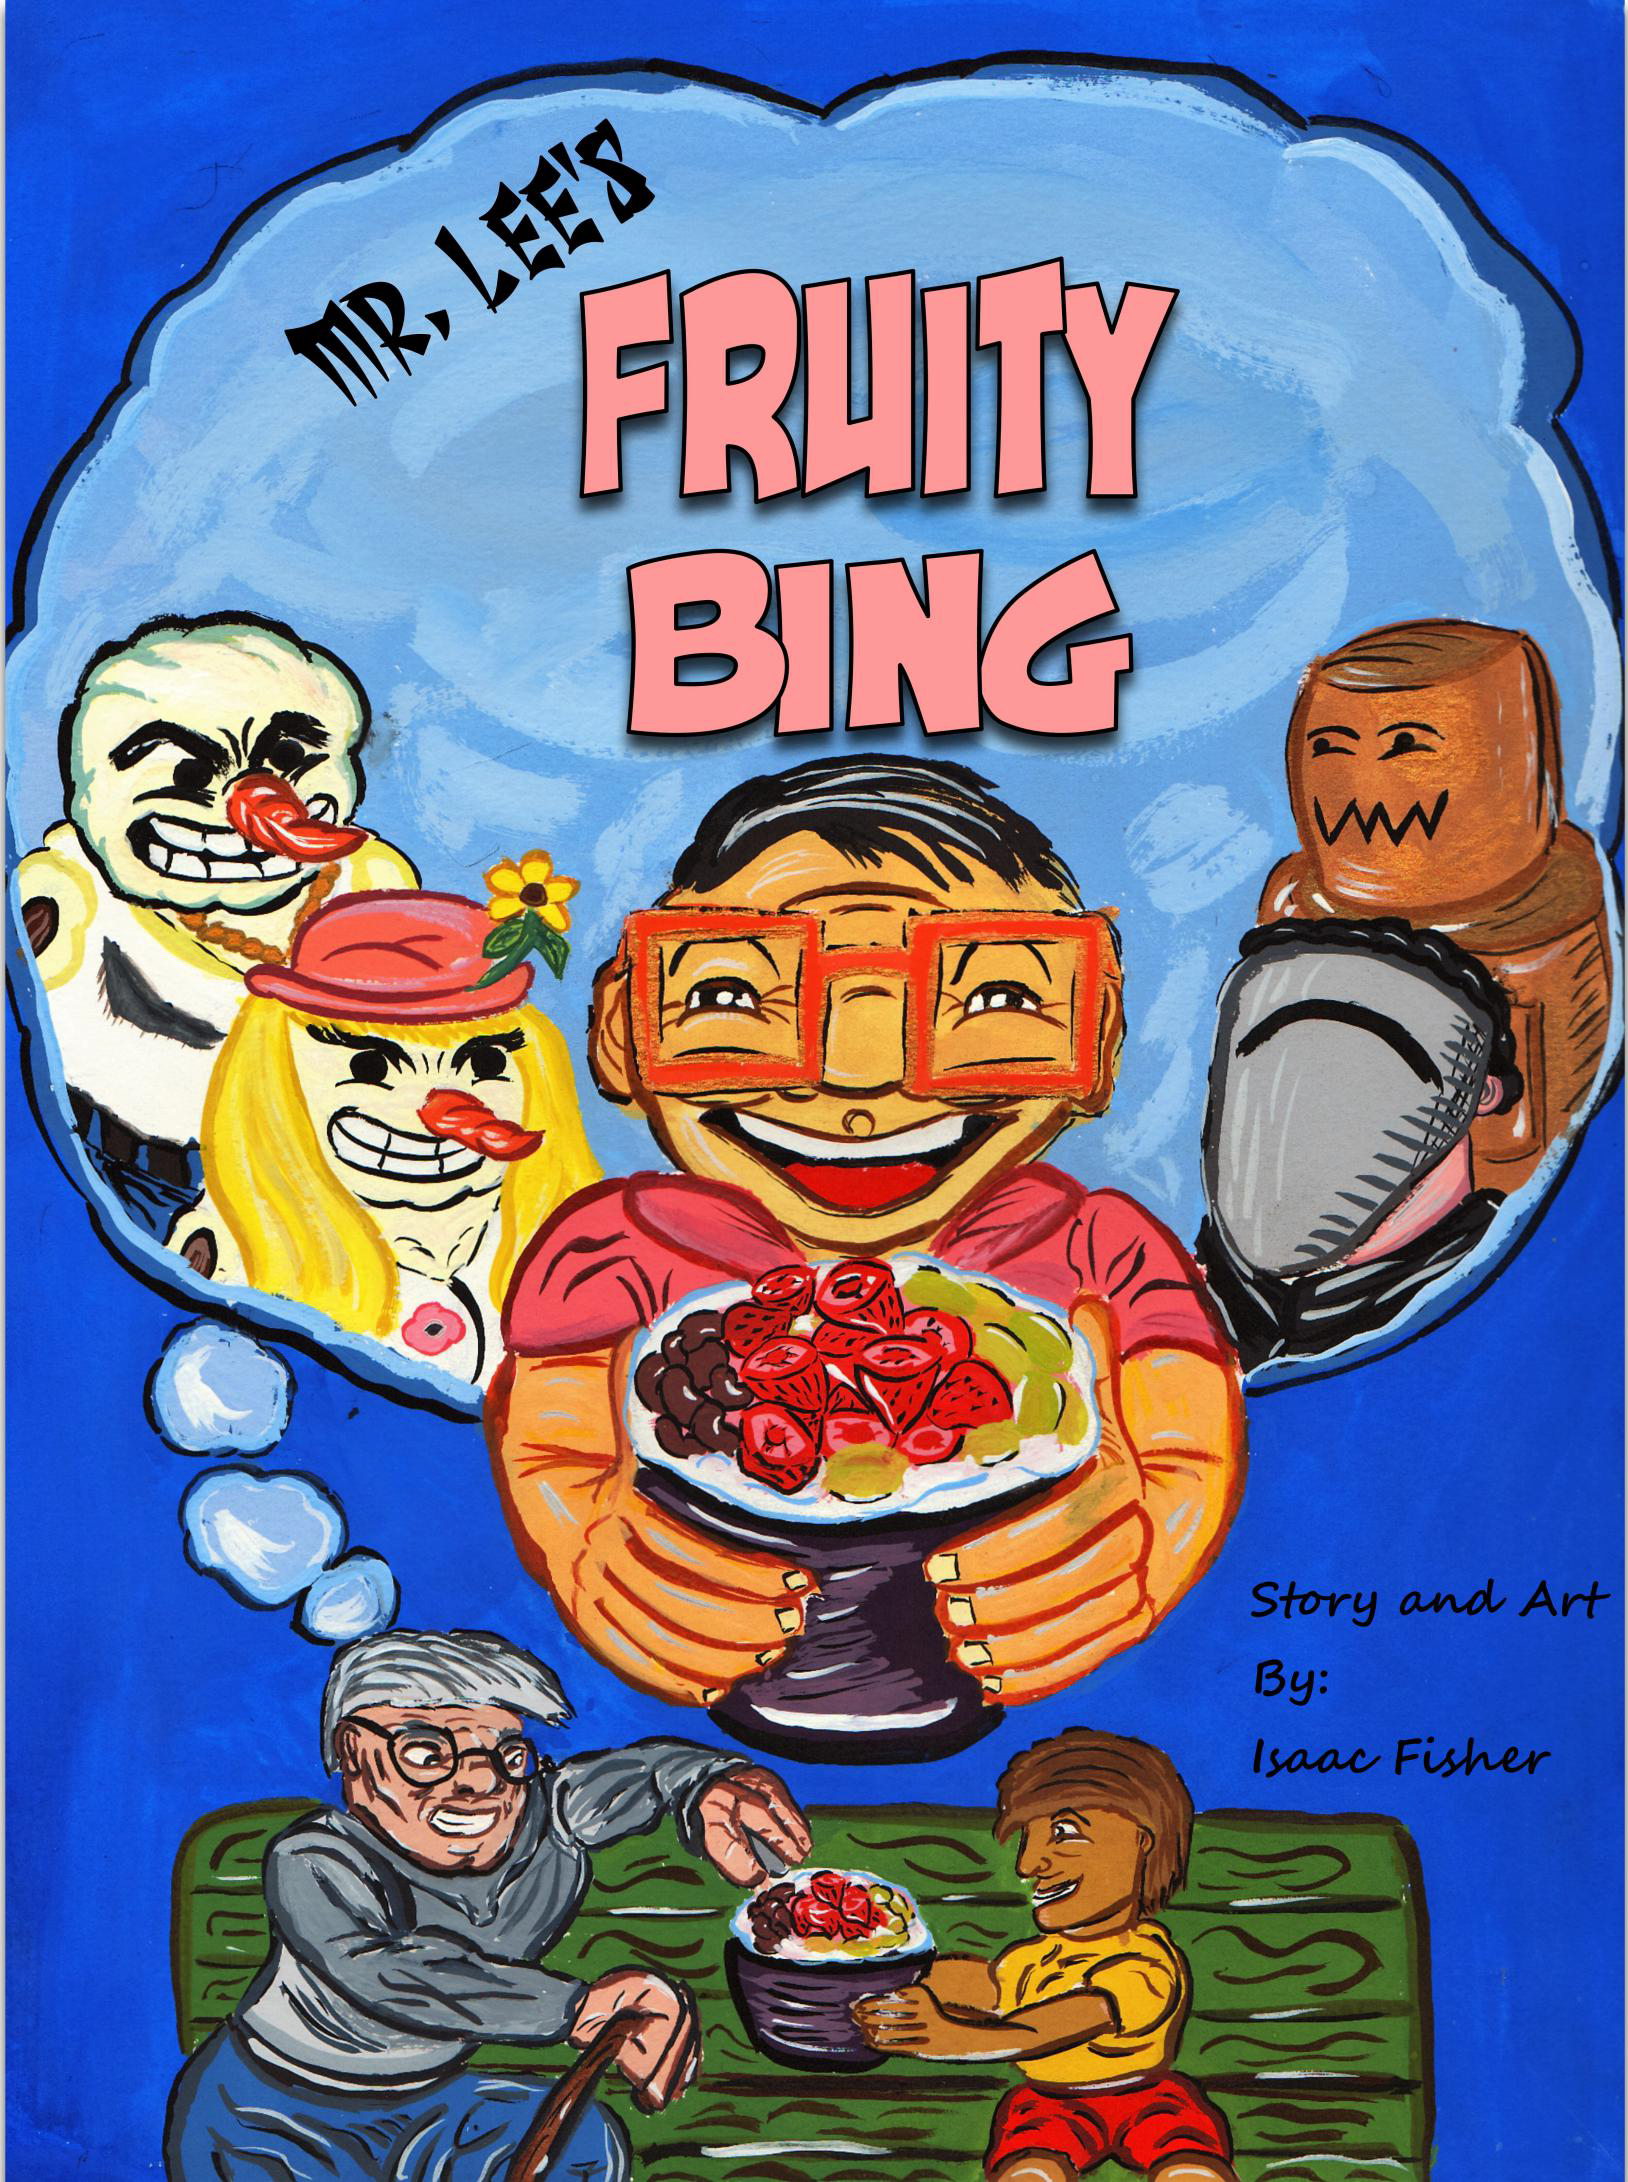 Mr. Lee's Fruity Bing images 1.16_Page_01.png